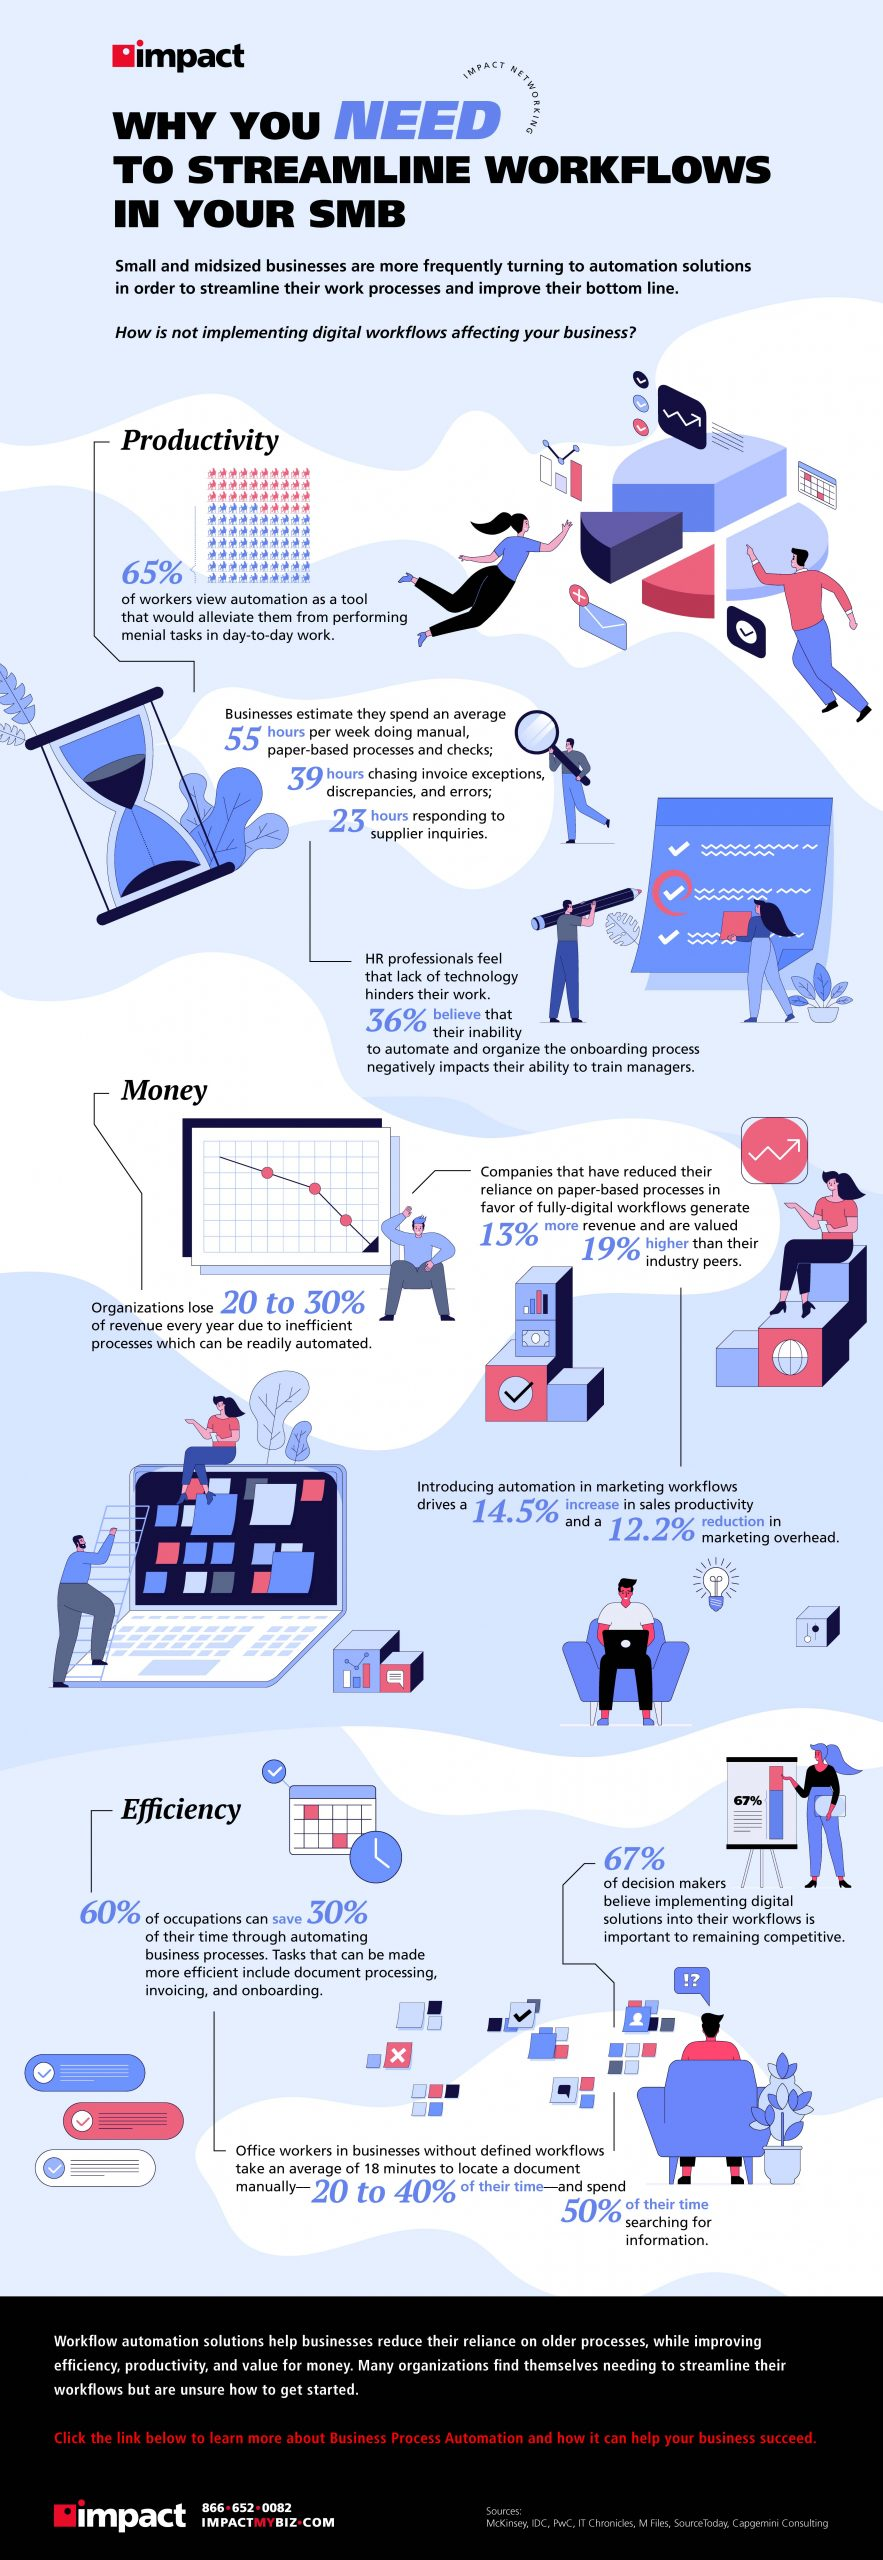 Infographic on Why you need to streamline workflows in your SMB